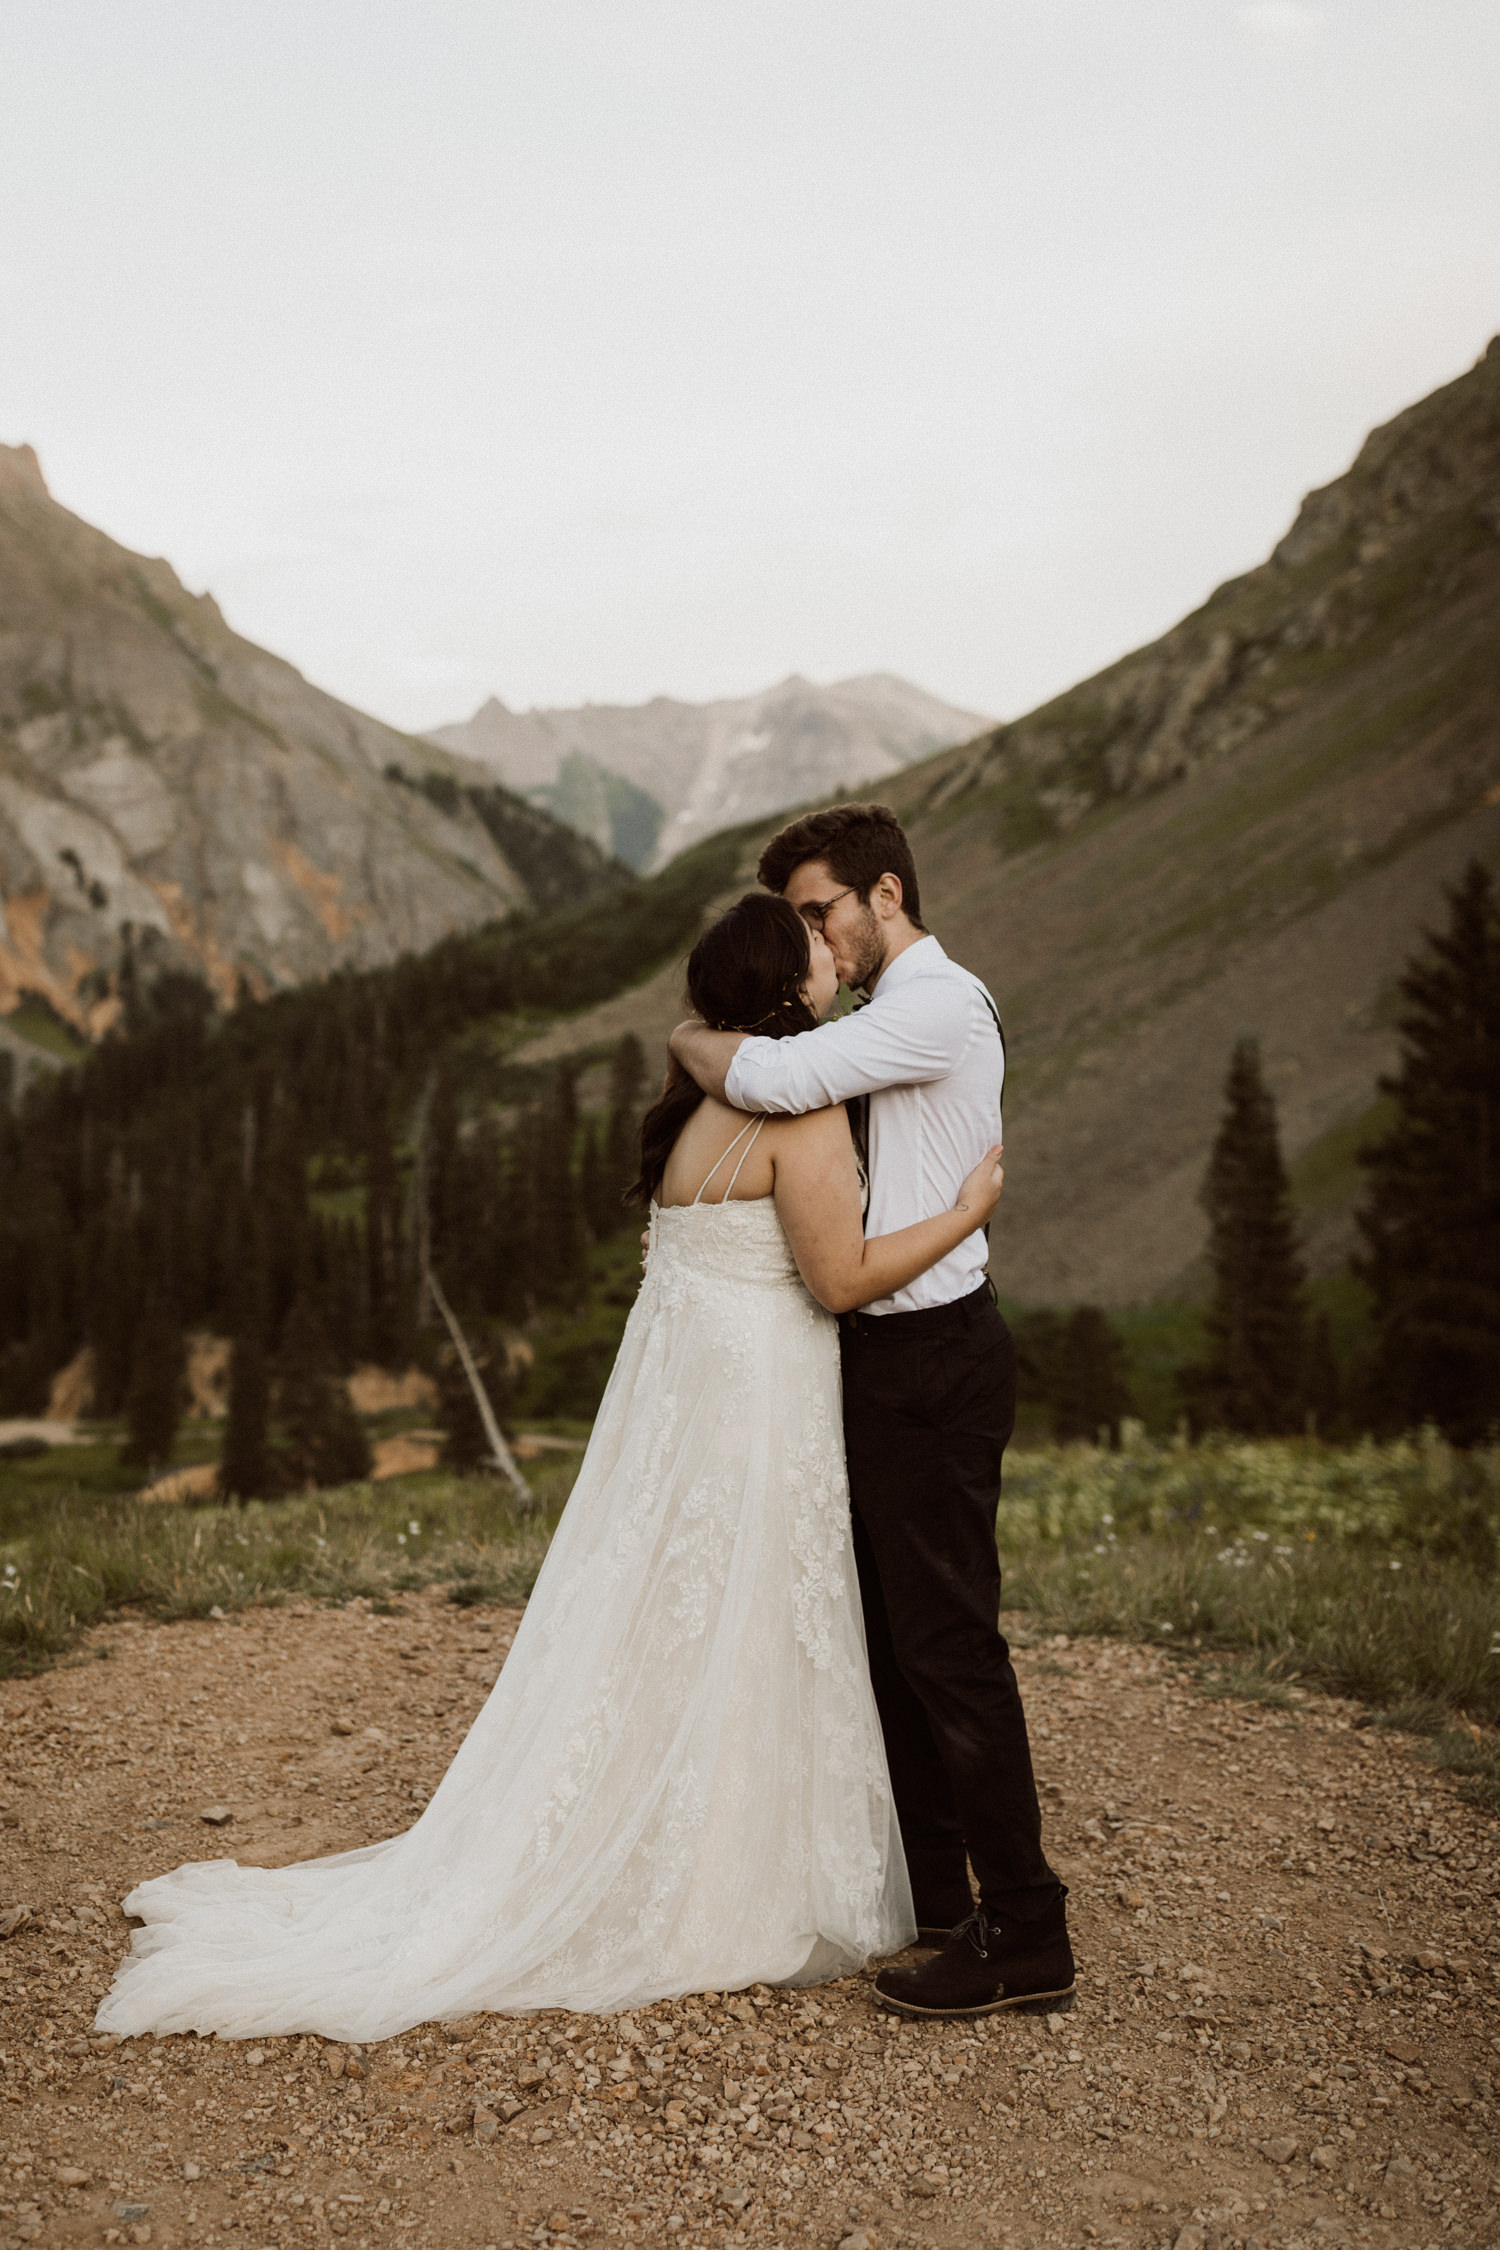 08_ouray-jeeping-elopement-13.jpg